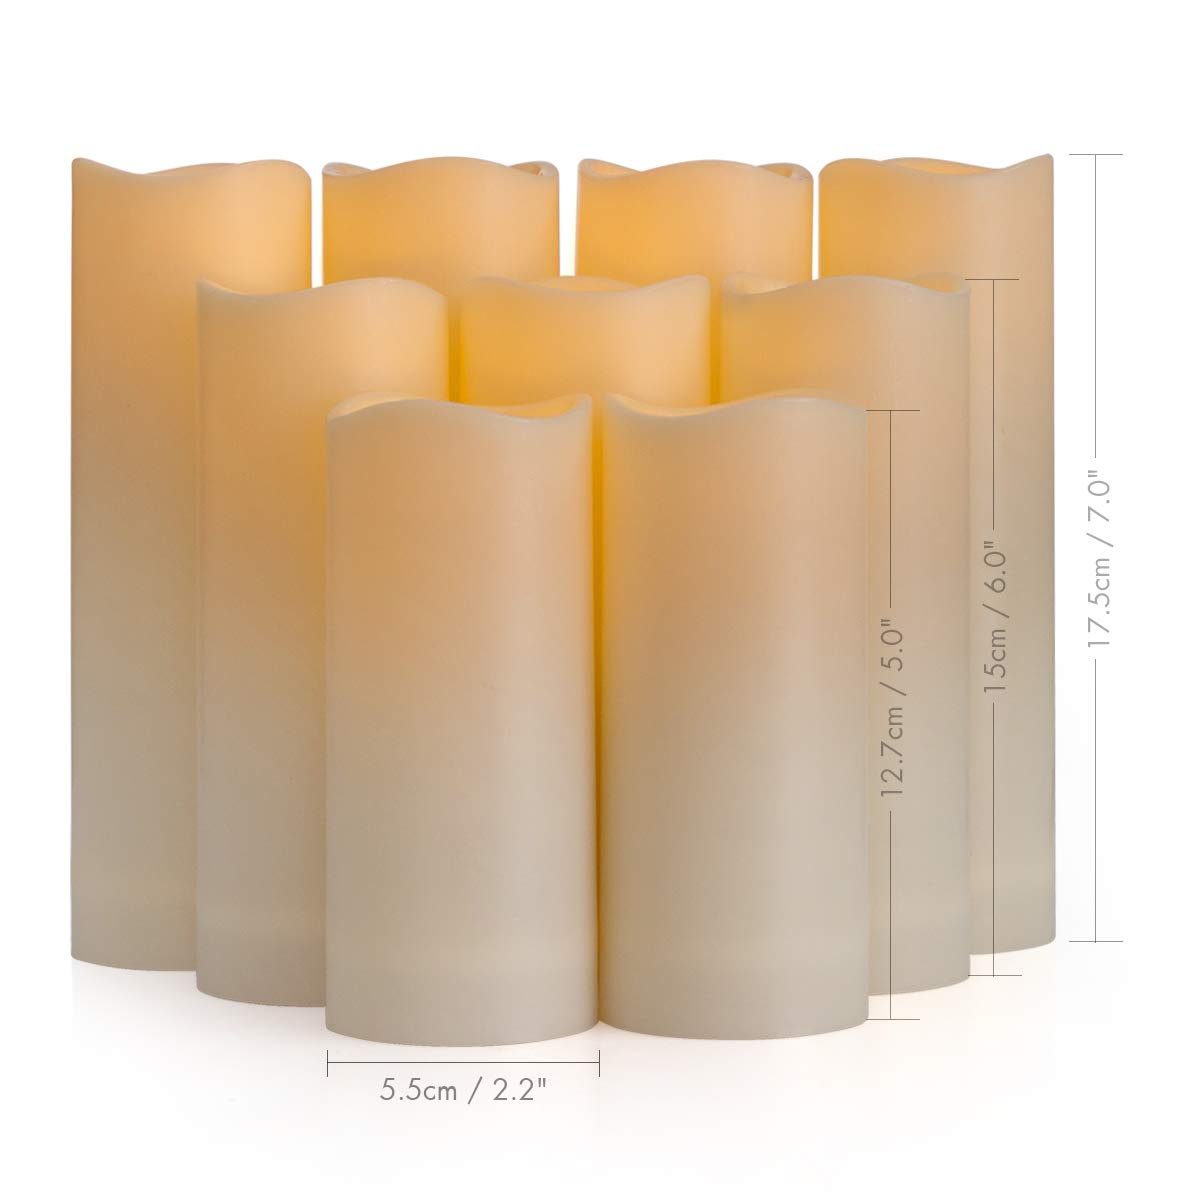 Flameless Candles, Waterproof Outdoor Candles set of 9 ( D 2.2'' X H 5''5''6''6''6''7''7''7''7'' ) LED Candles Battery Operated Candles with Remote Timer, Ivory White by Enido (Image #7)